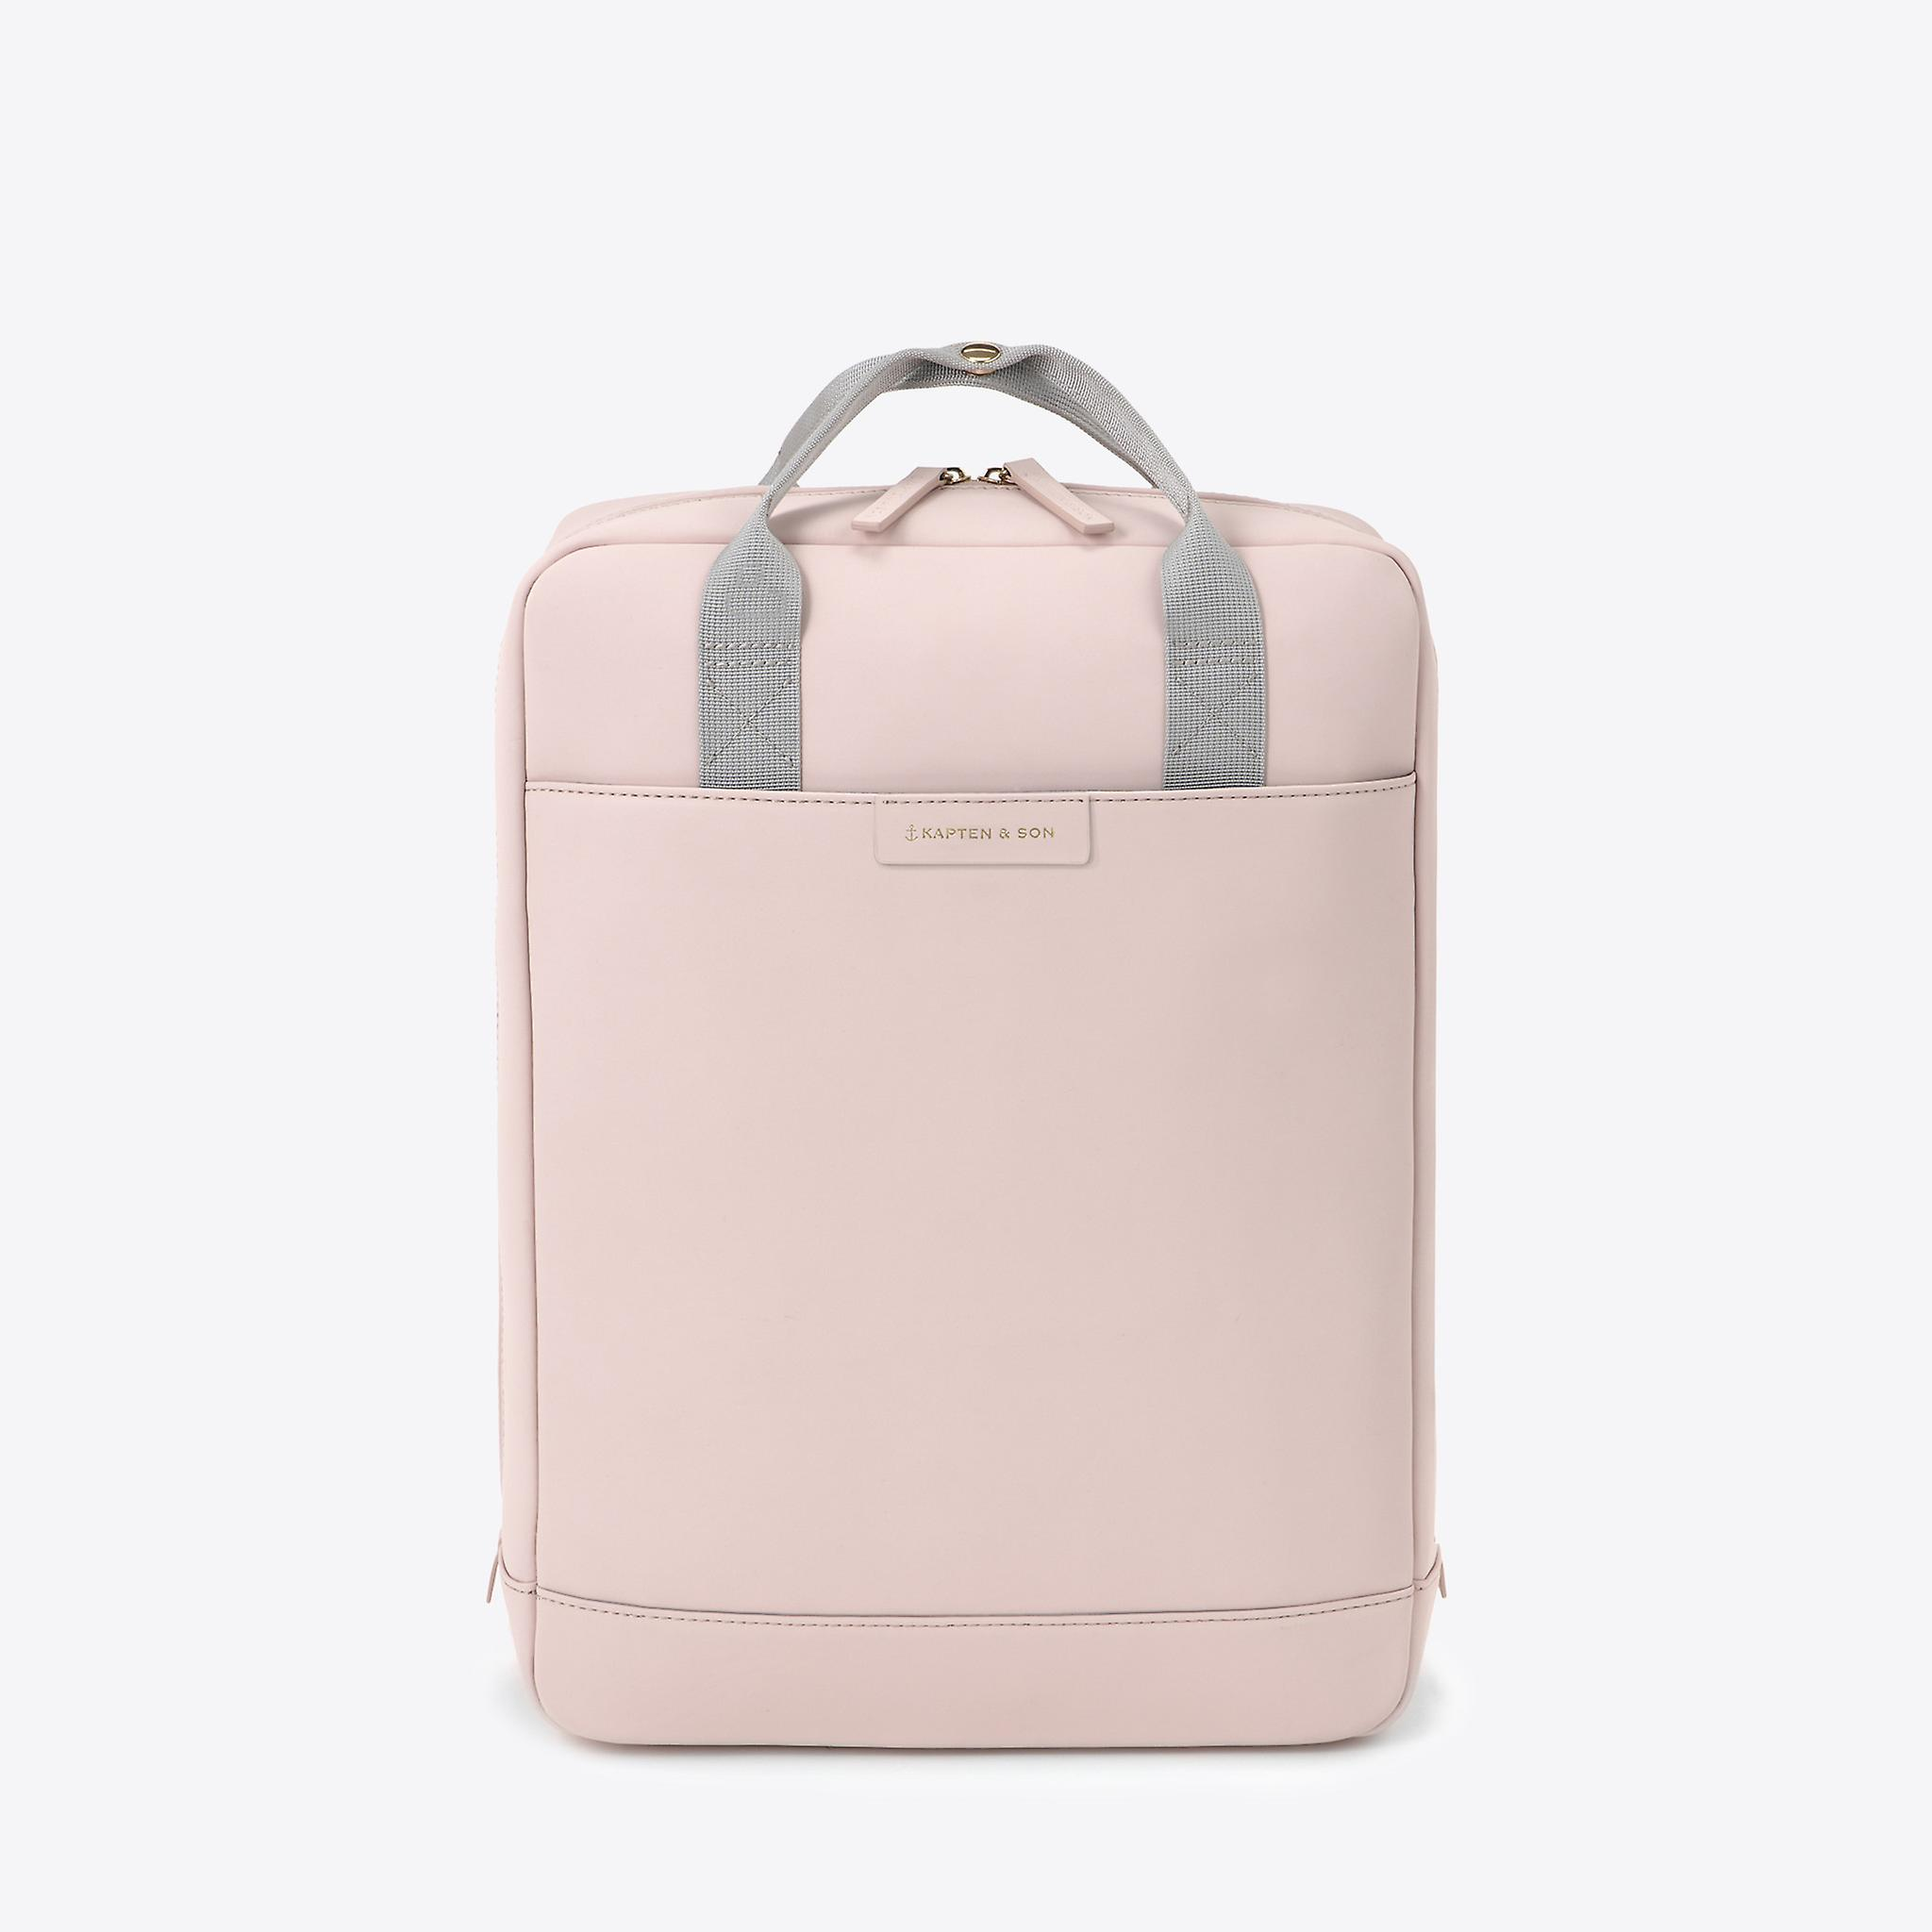 Kapten and Son Malmo Backpack